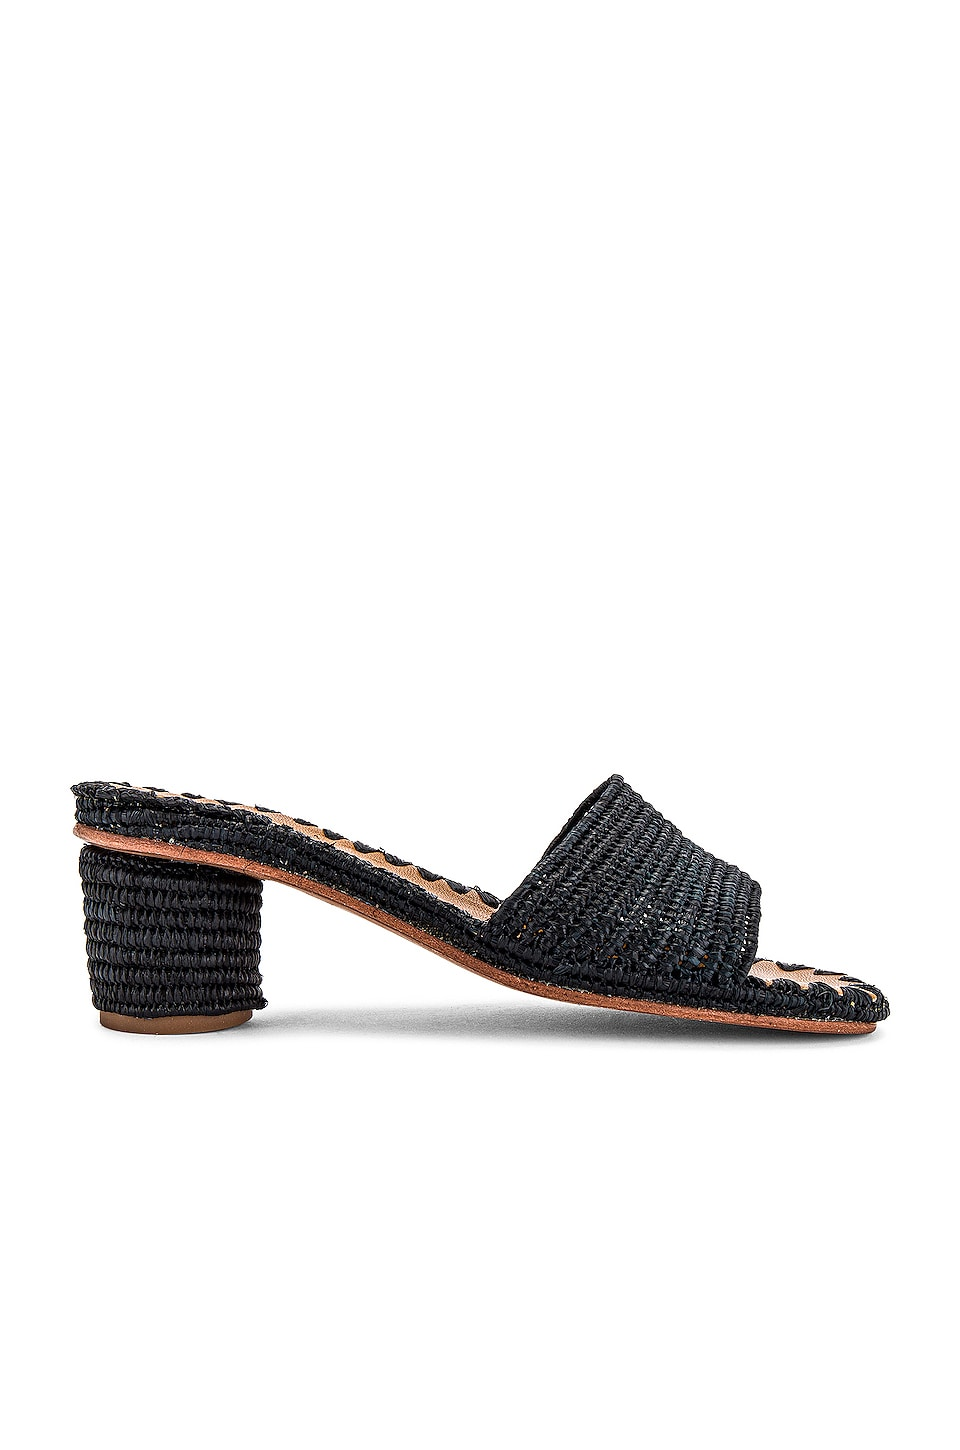 Carrie Forbes Bou Sandal in Black